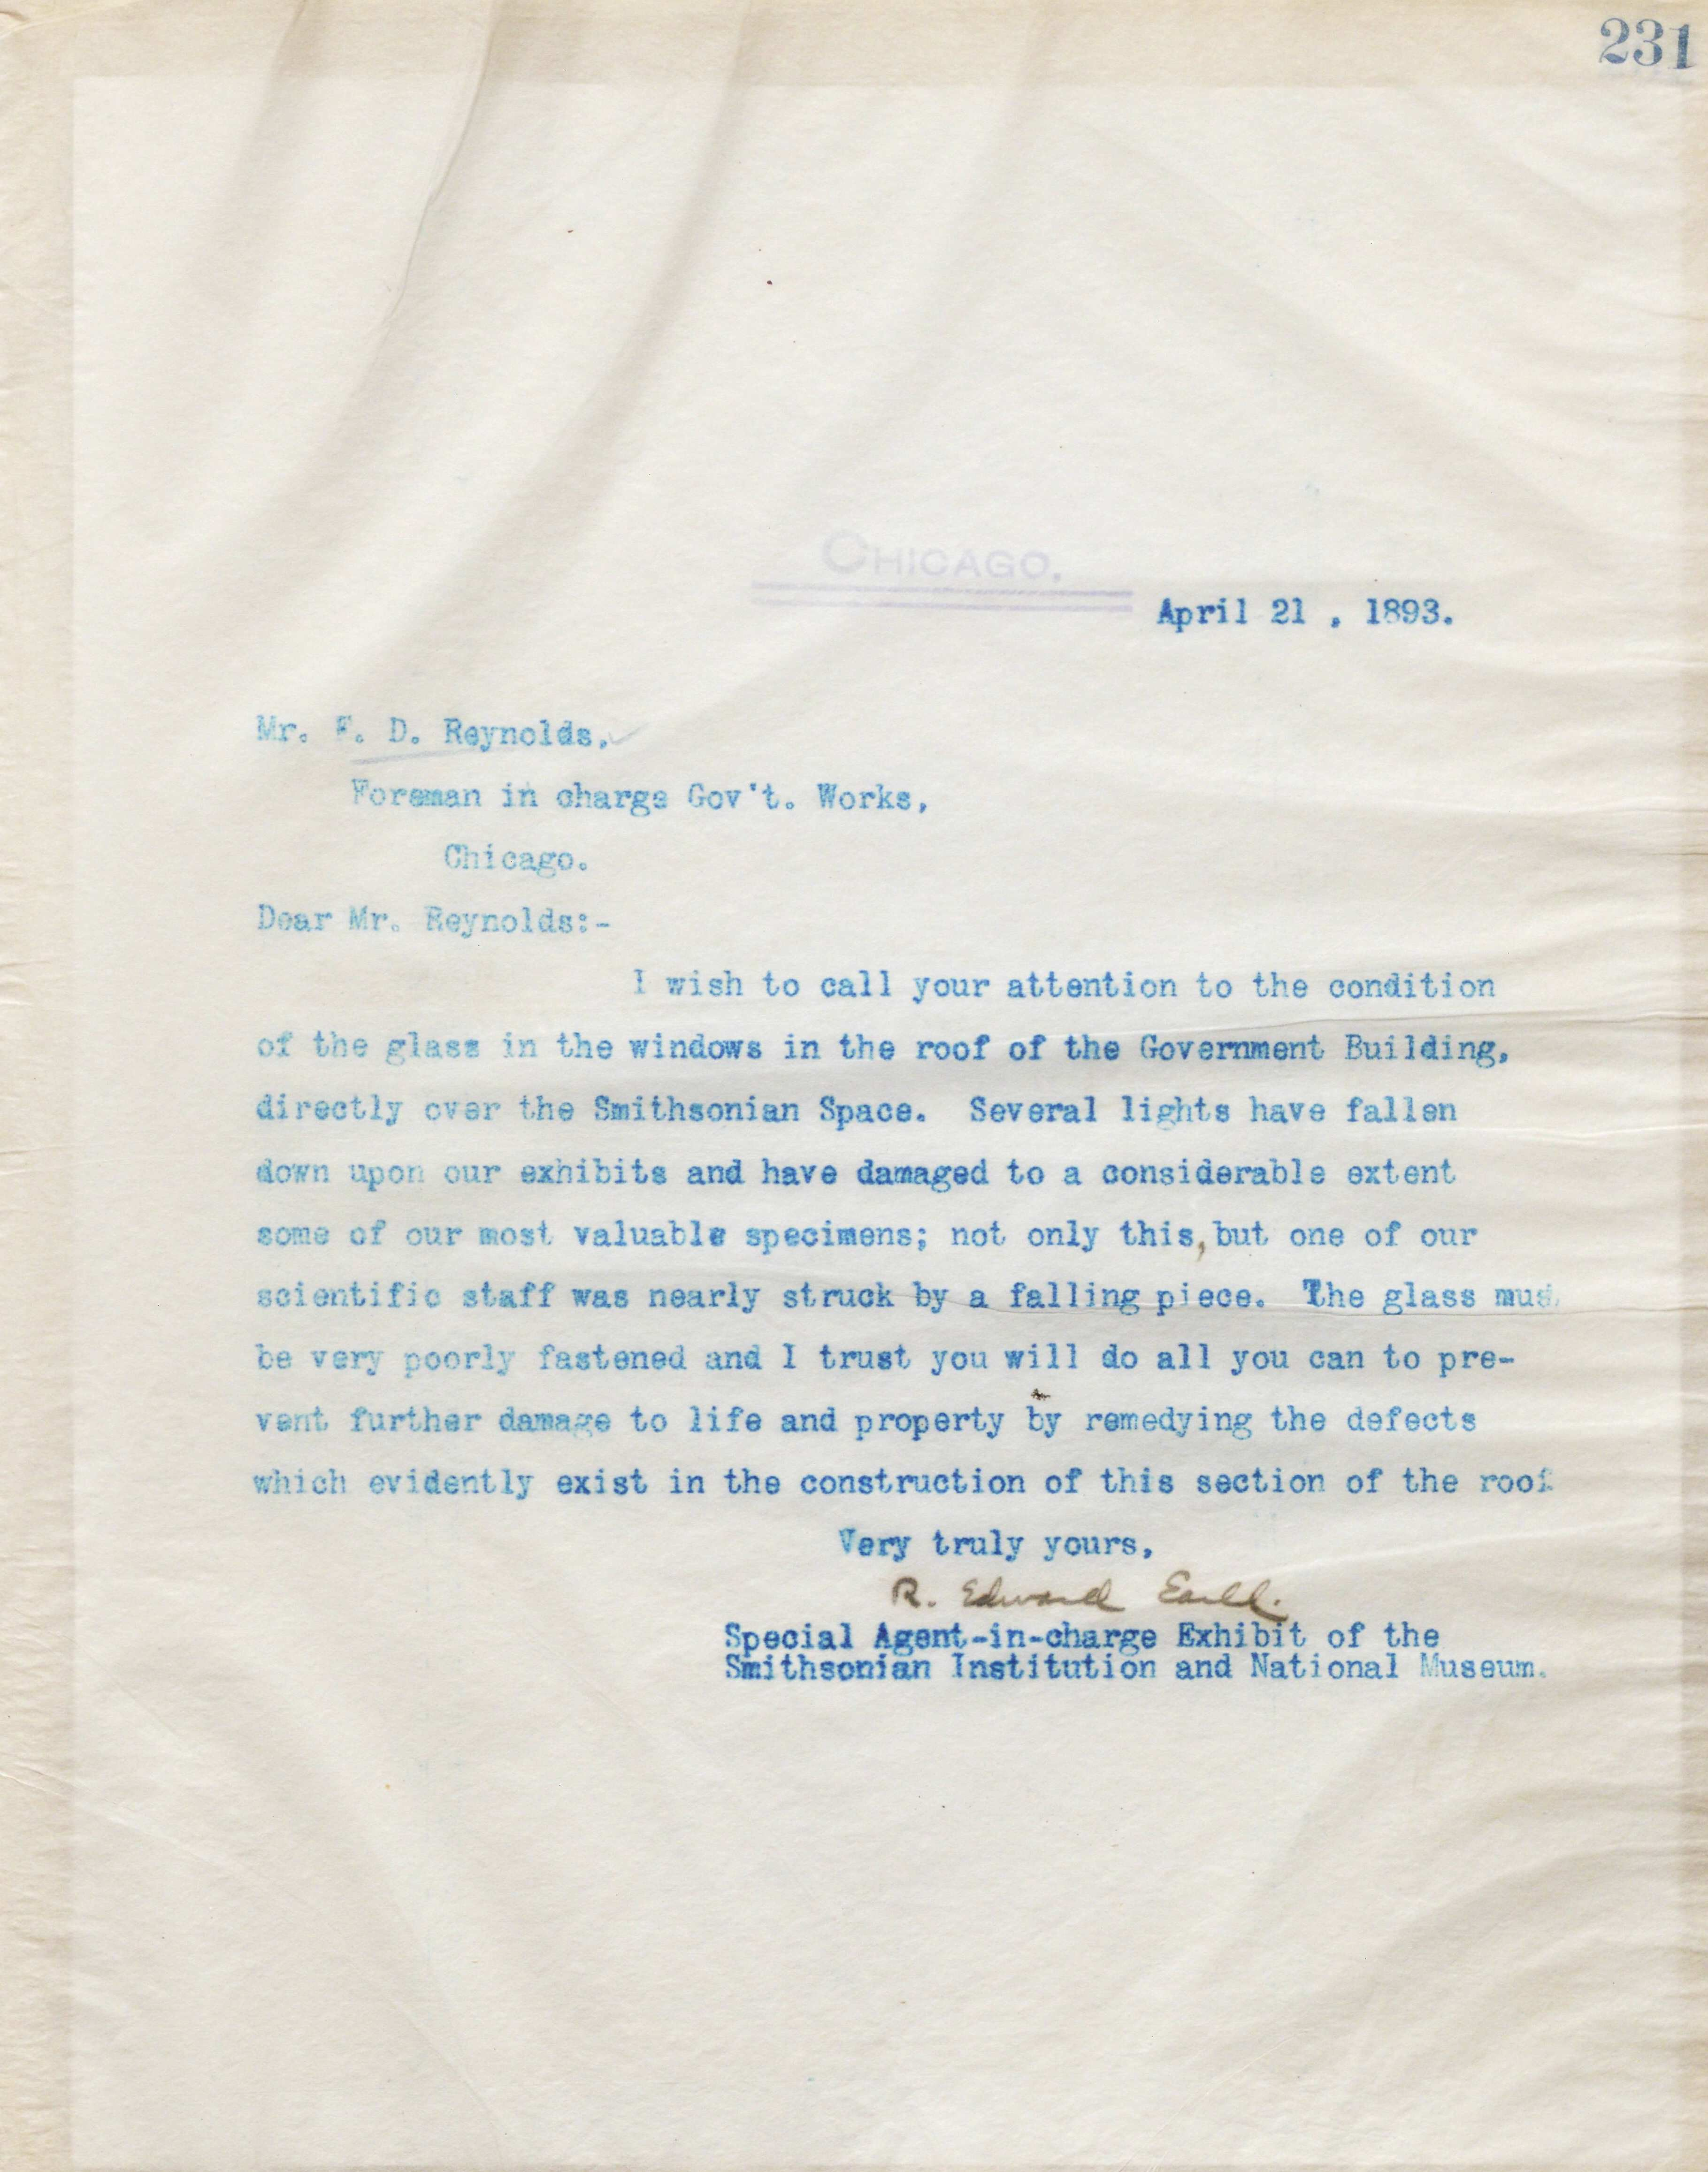 Letter from R. Edward Earll complaining to F.D. Reynolds about the state of the glass windows in the